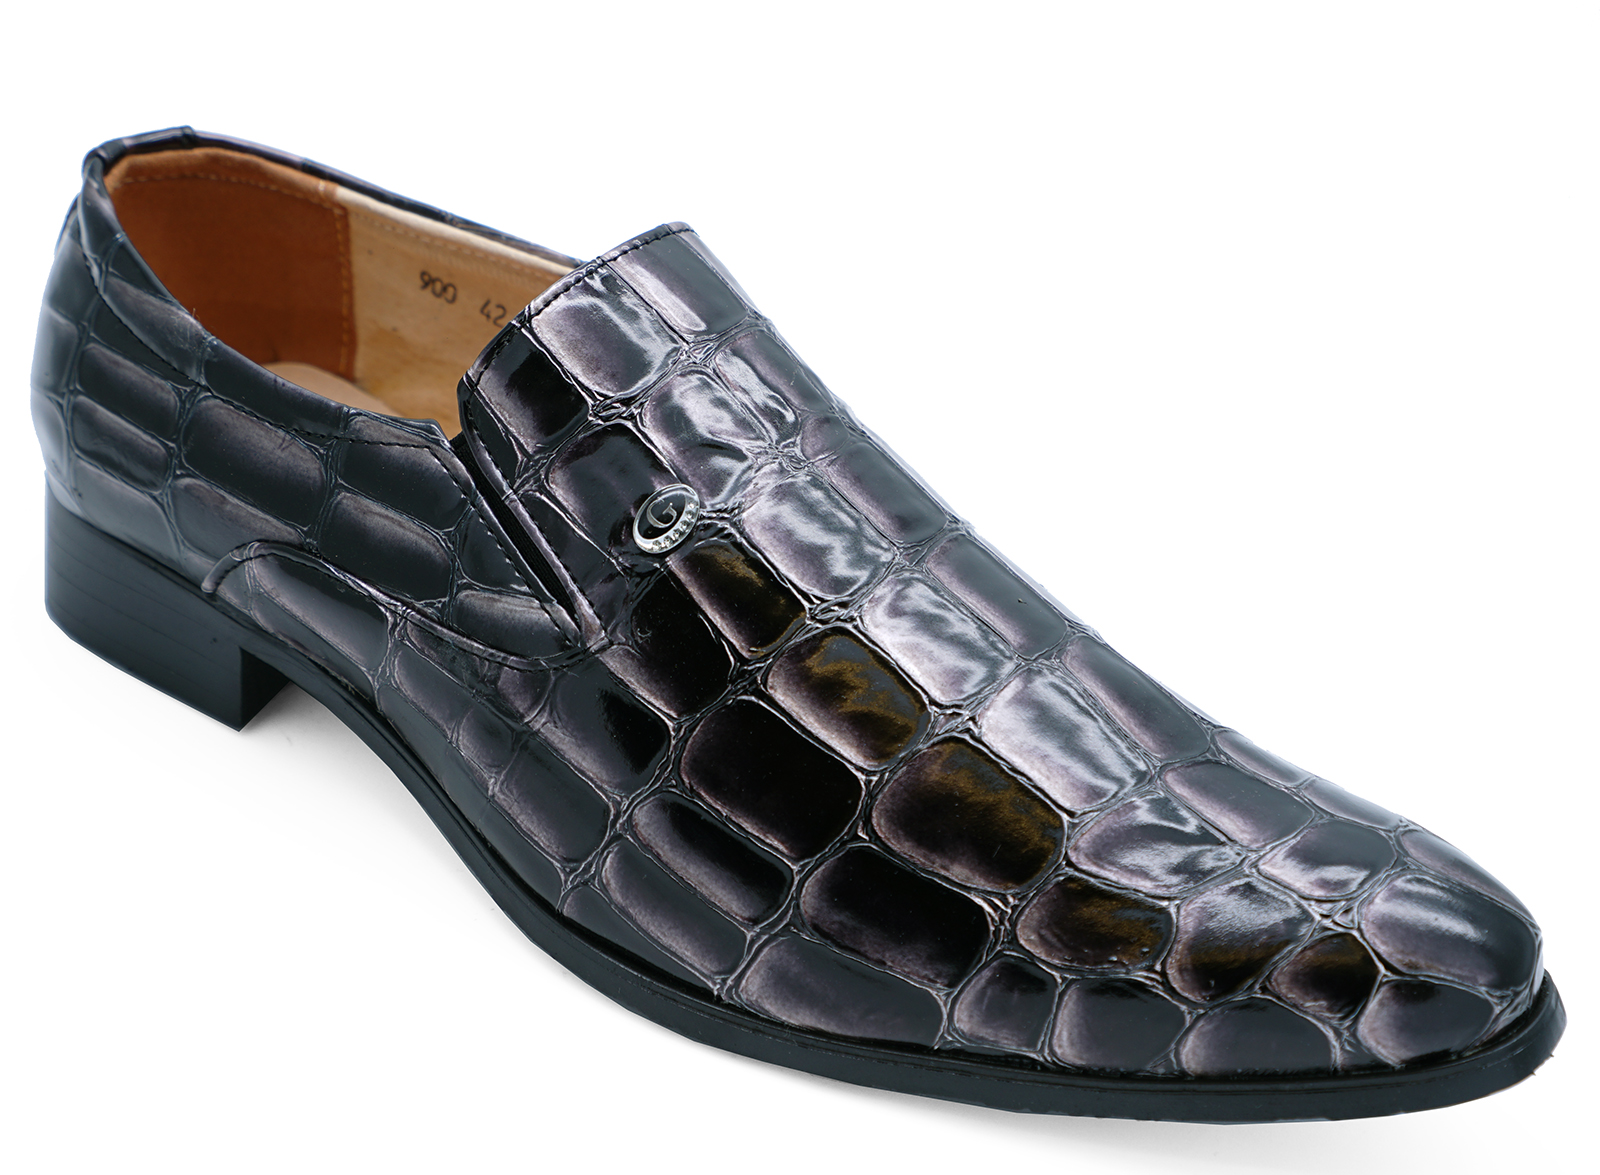 MENS-SLIP-ON-WORK-WEDDING-SMART-CASUAL-LOAFERS-FORMAL-SUIT-SHOES-SIZES-6-11 thumbnail 5